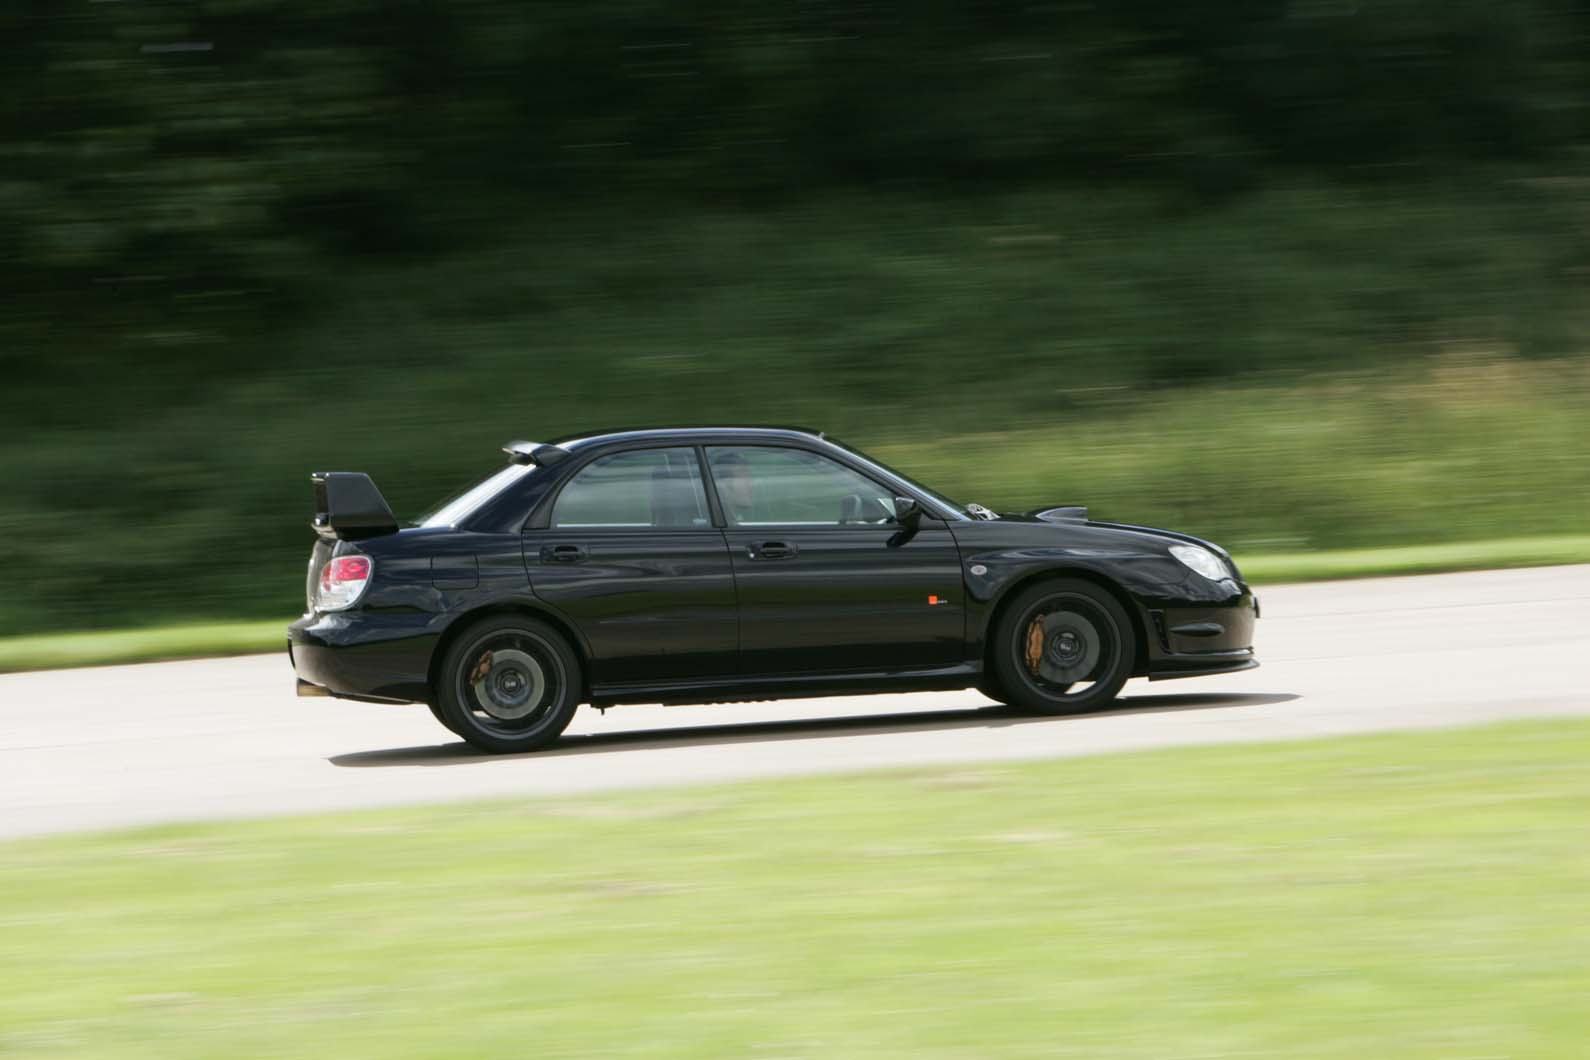 Used Car Buying Guide Subaru Impreza Wrx Autocar Engines Boxer 4wd Diagram A 215bhp 20 Litre Turbocharged Engine Powering All Four Wheels Via An Open Differential At The Front And Limited Slip Item Back